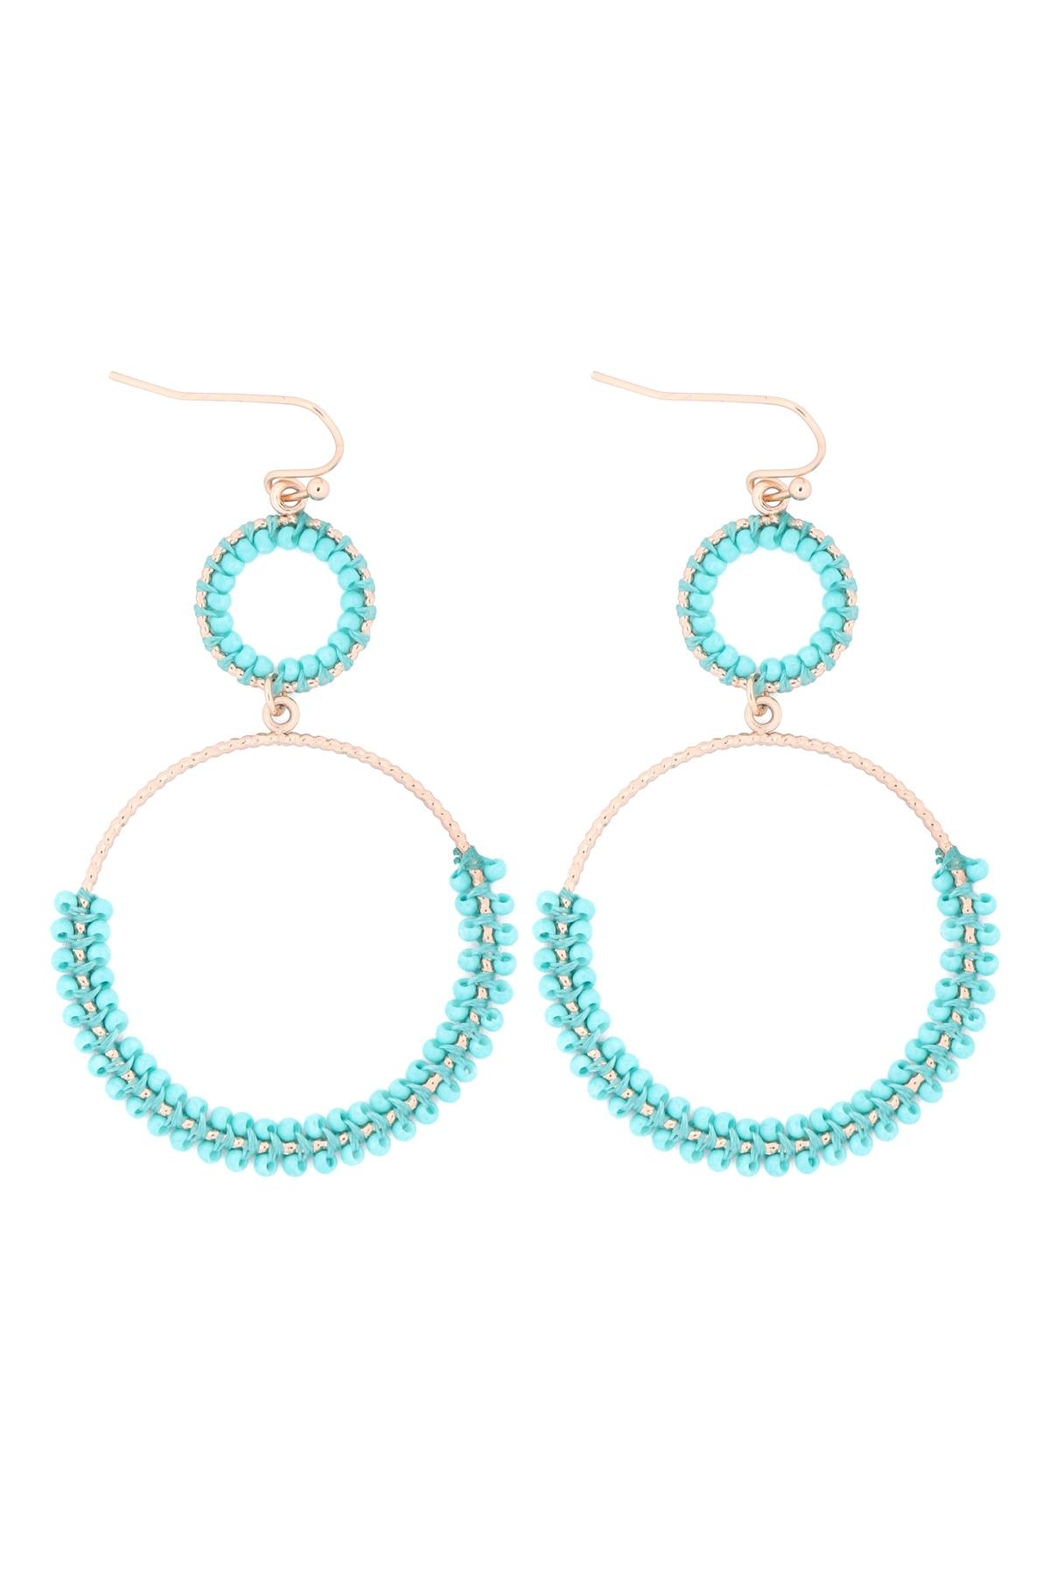 Riah Fashion Beaded-Wrap-Texture-Link-Hoop-Earrings - Front Cropped Image